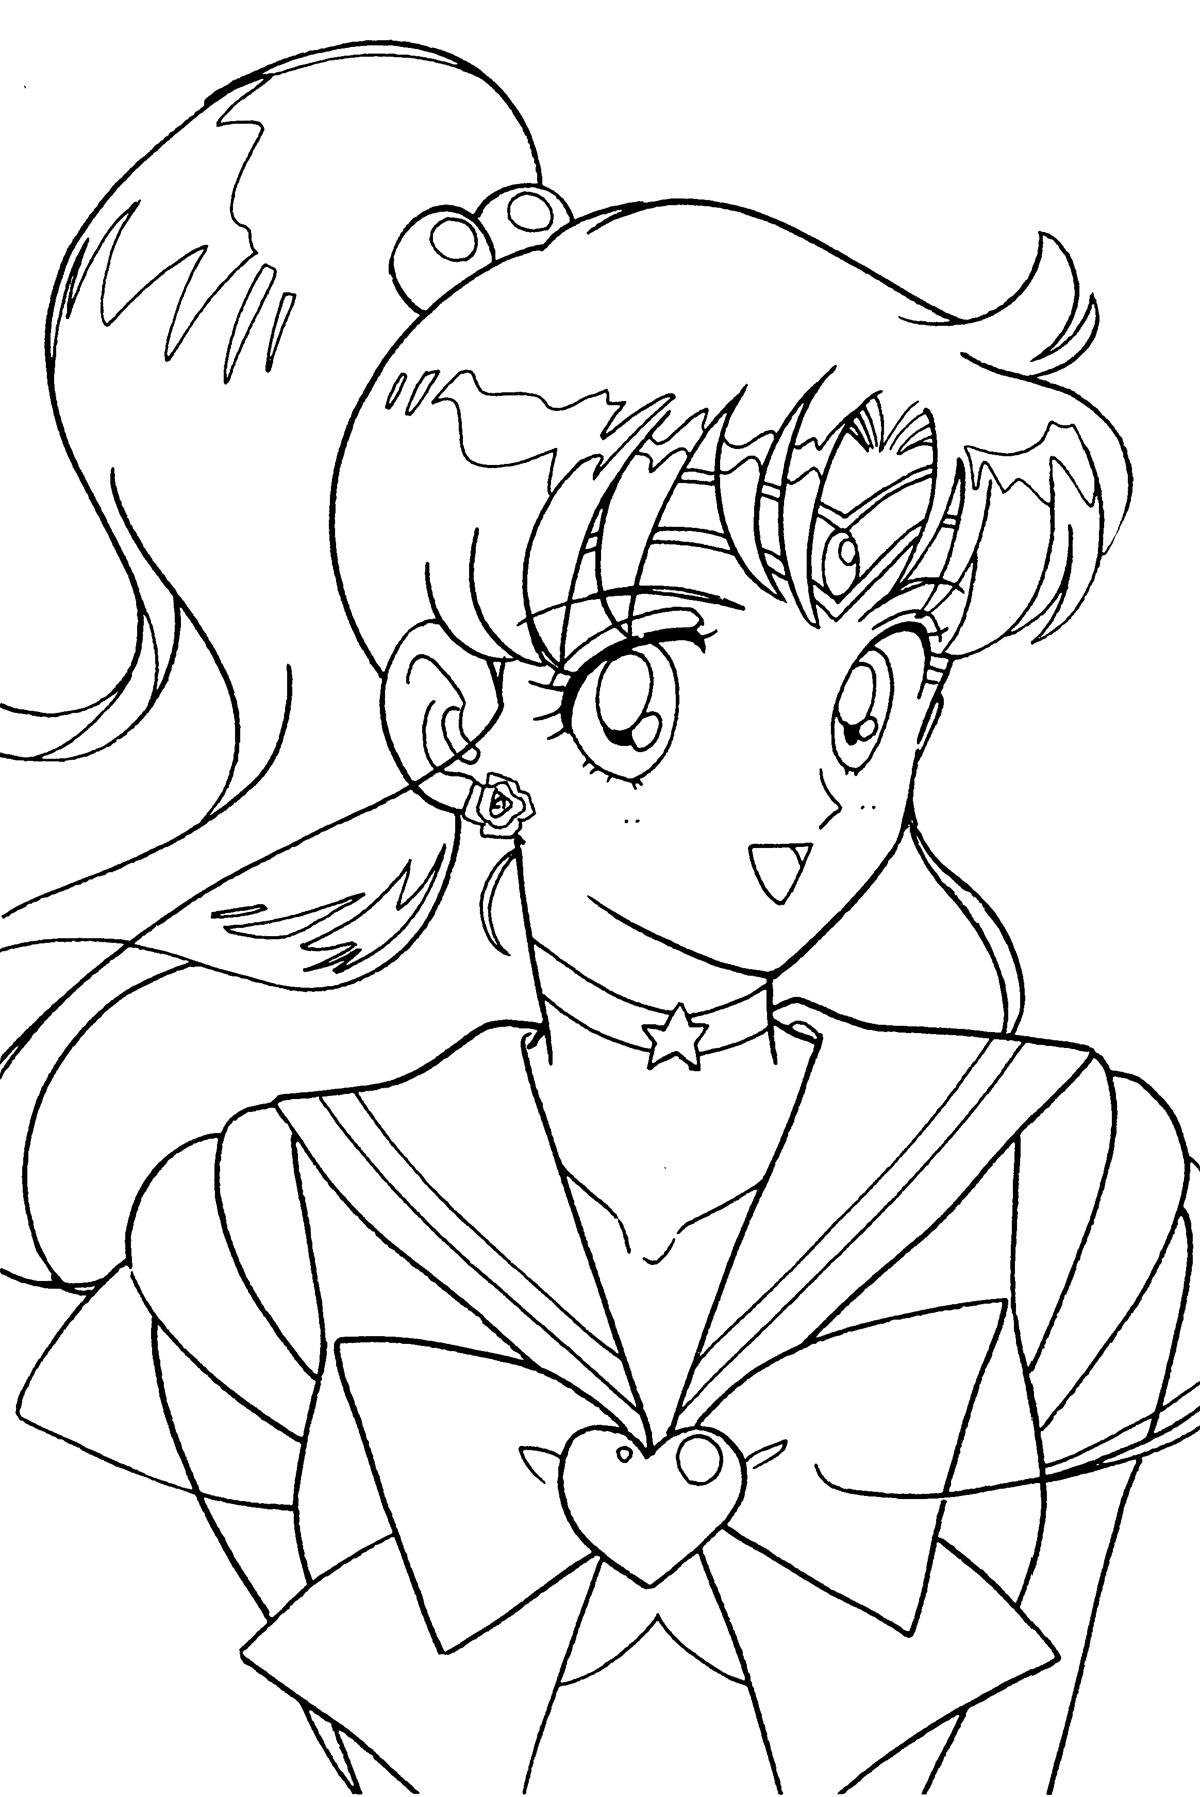 jupiter coloring pages - tsuki matsuri the sailormoon coloring book archive